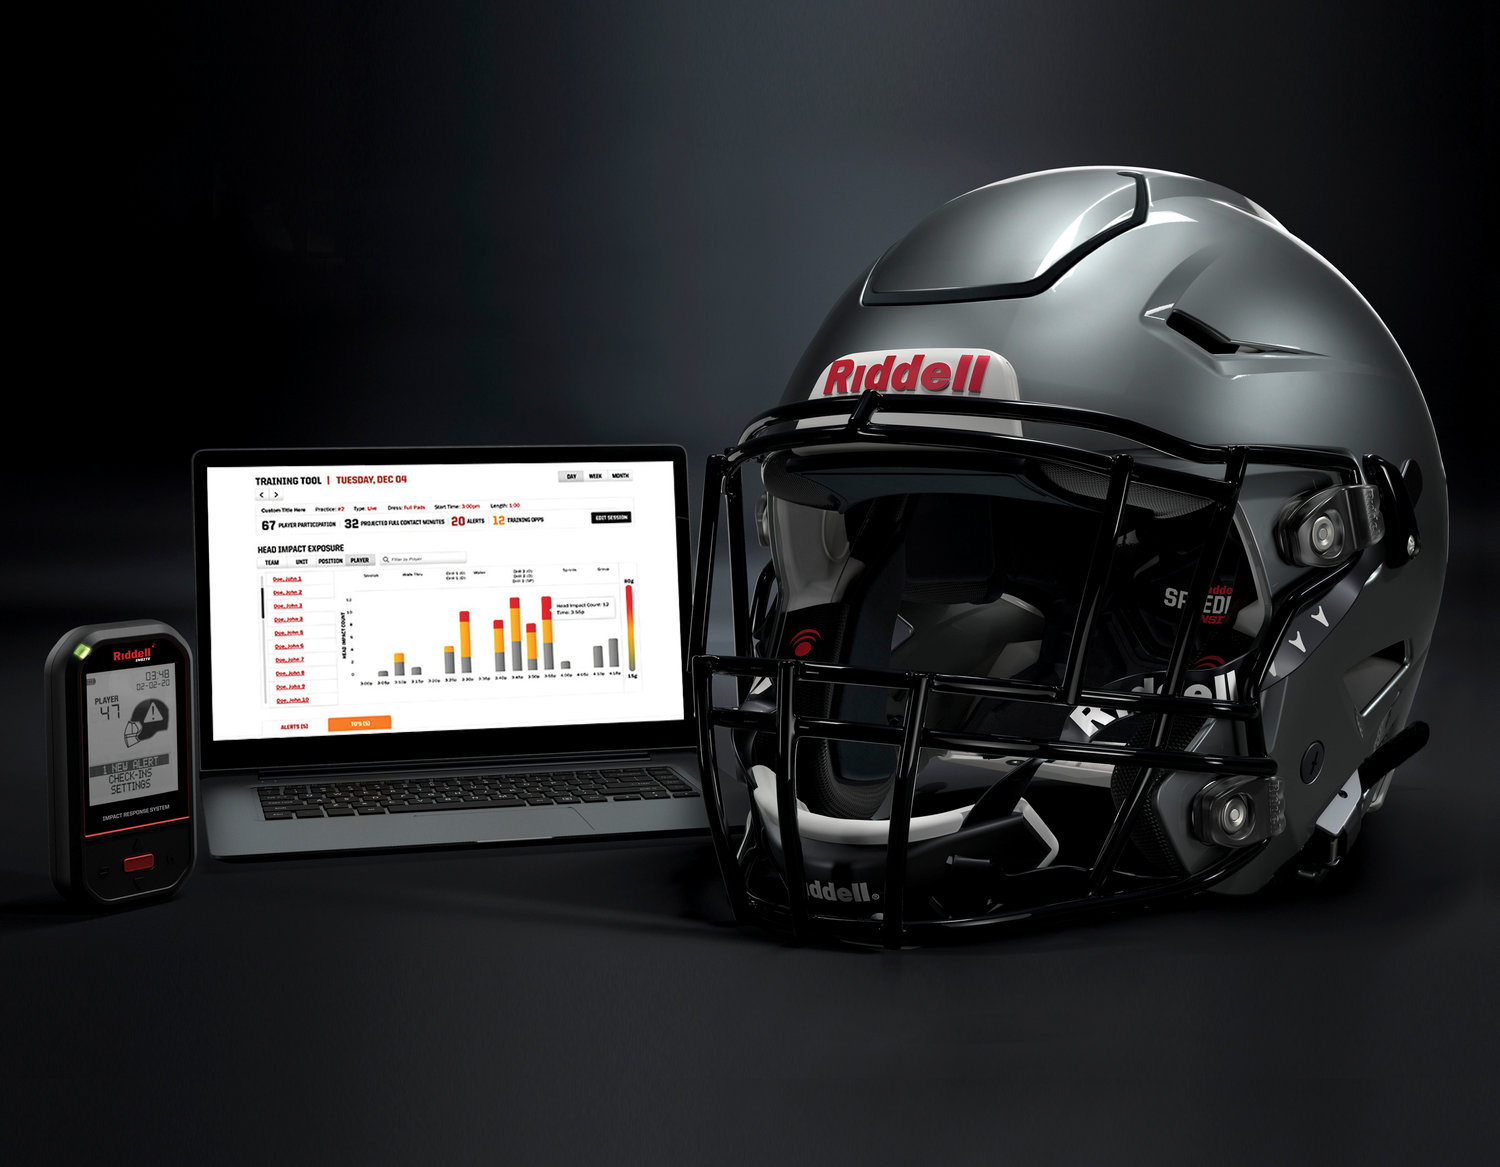 In this May 2020 photo provided by Riddell, a Riddell SpeedFlex helmet sits next to a computer screen displaying information from the InSite tool. Teaming with Catapult, an Australia-based technology company, Riddell is providing coaches, players and medical staff detailed information regarding anything from practice regimens to helmet contacts to overall preparation for athletes. (Riddell via AP)